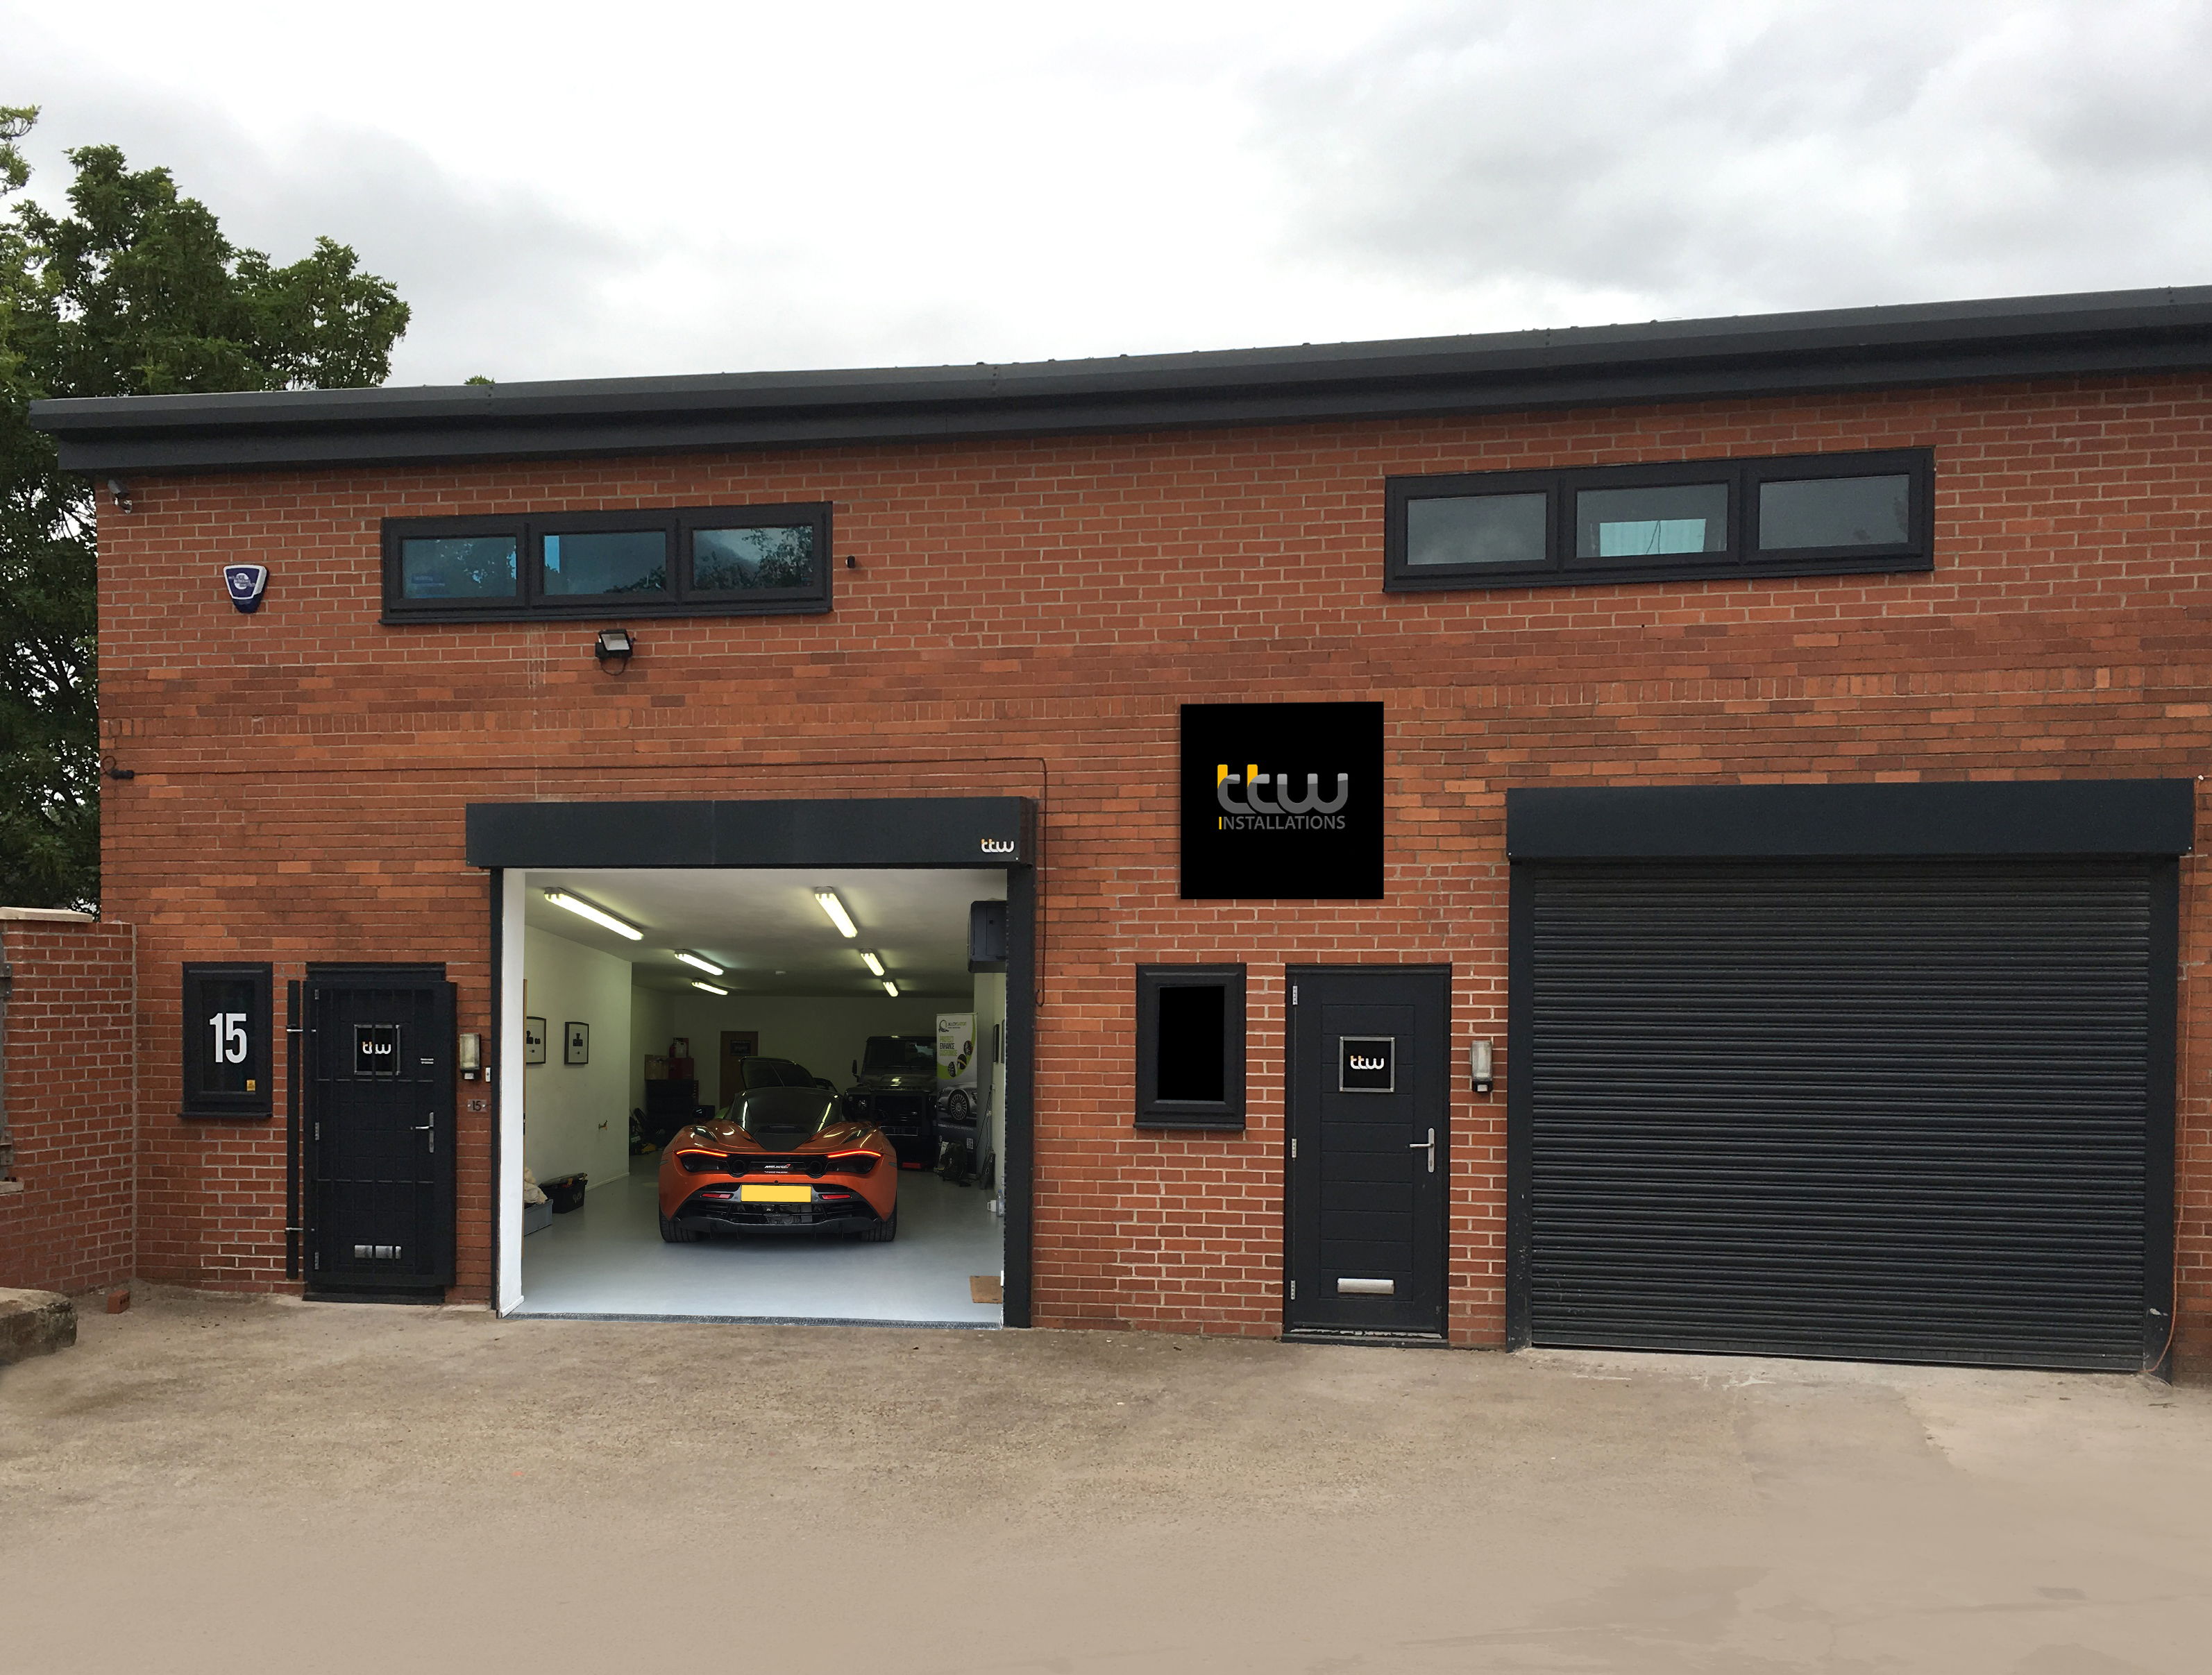 TTW Installations - UK's Leading Automotive Installations & Security Specialists